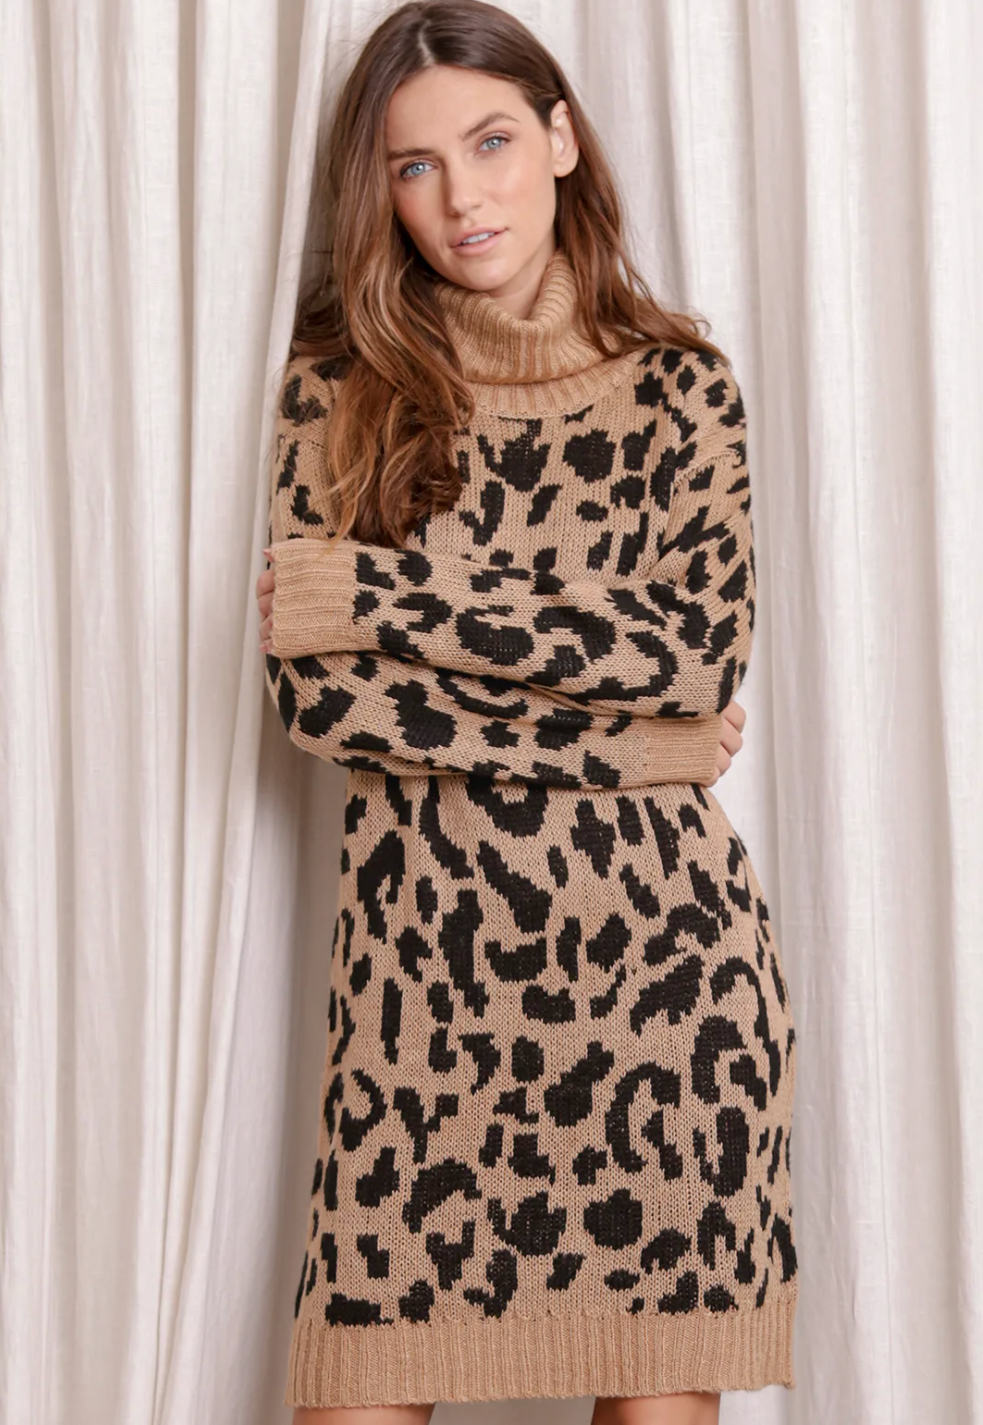 Leopard print sweater dress from Lulus